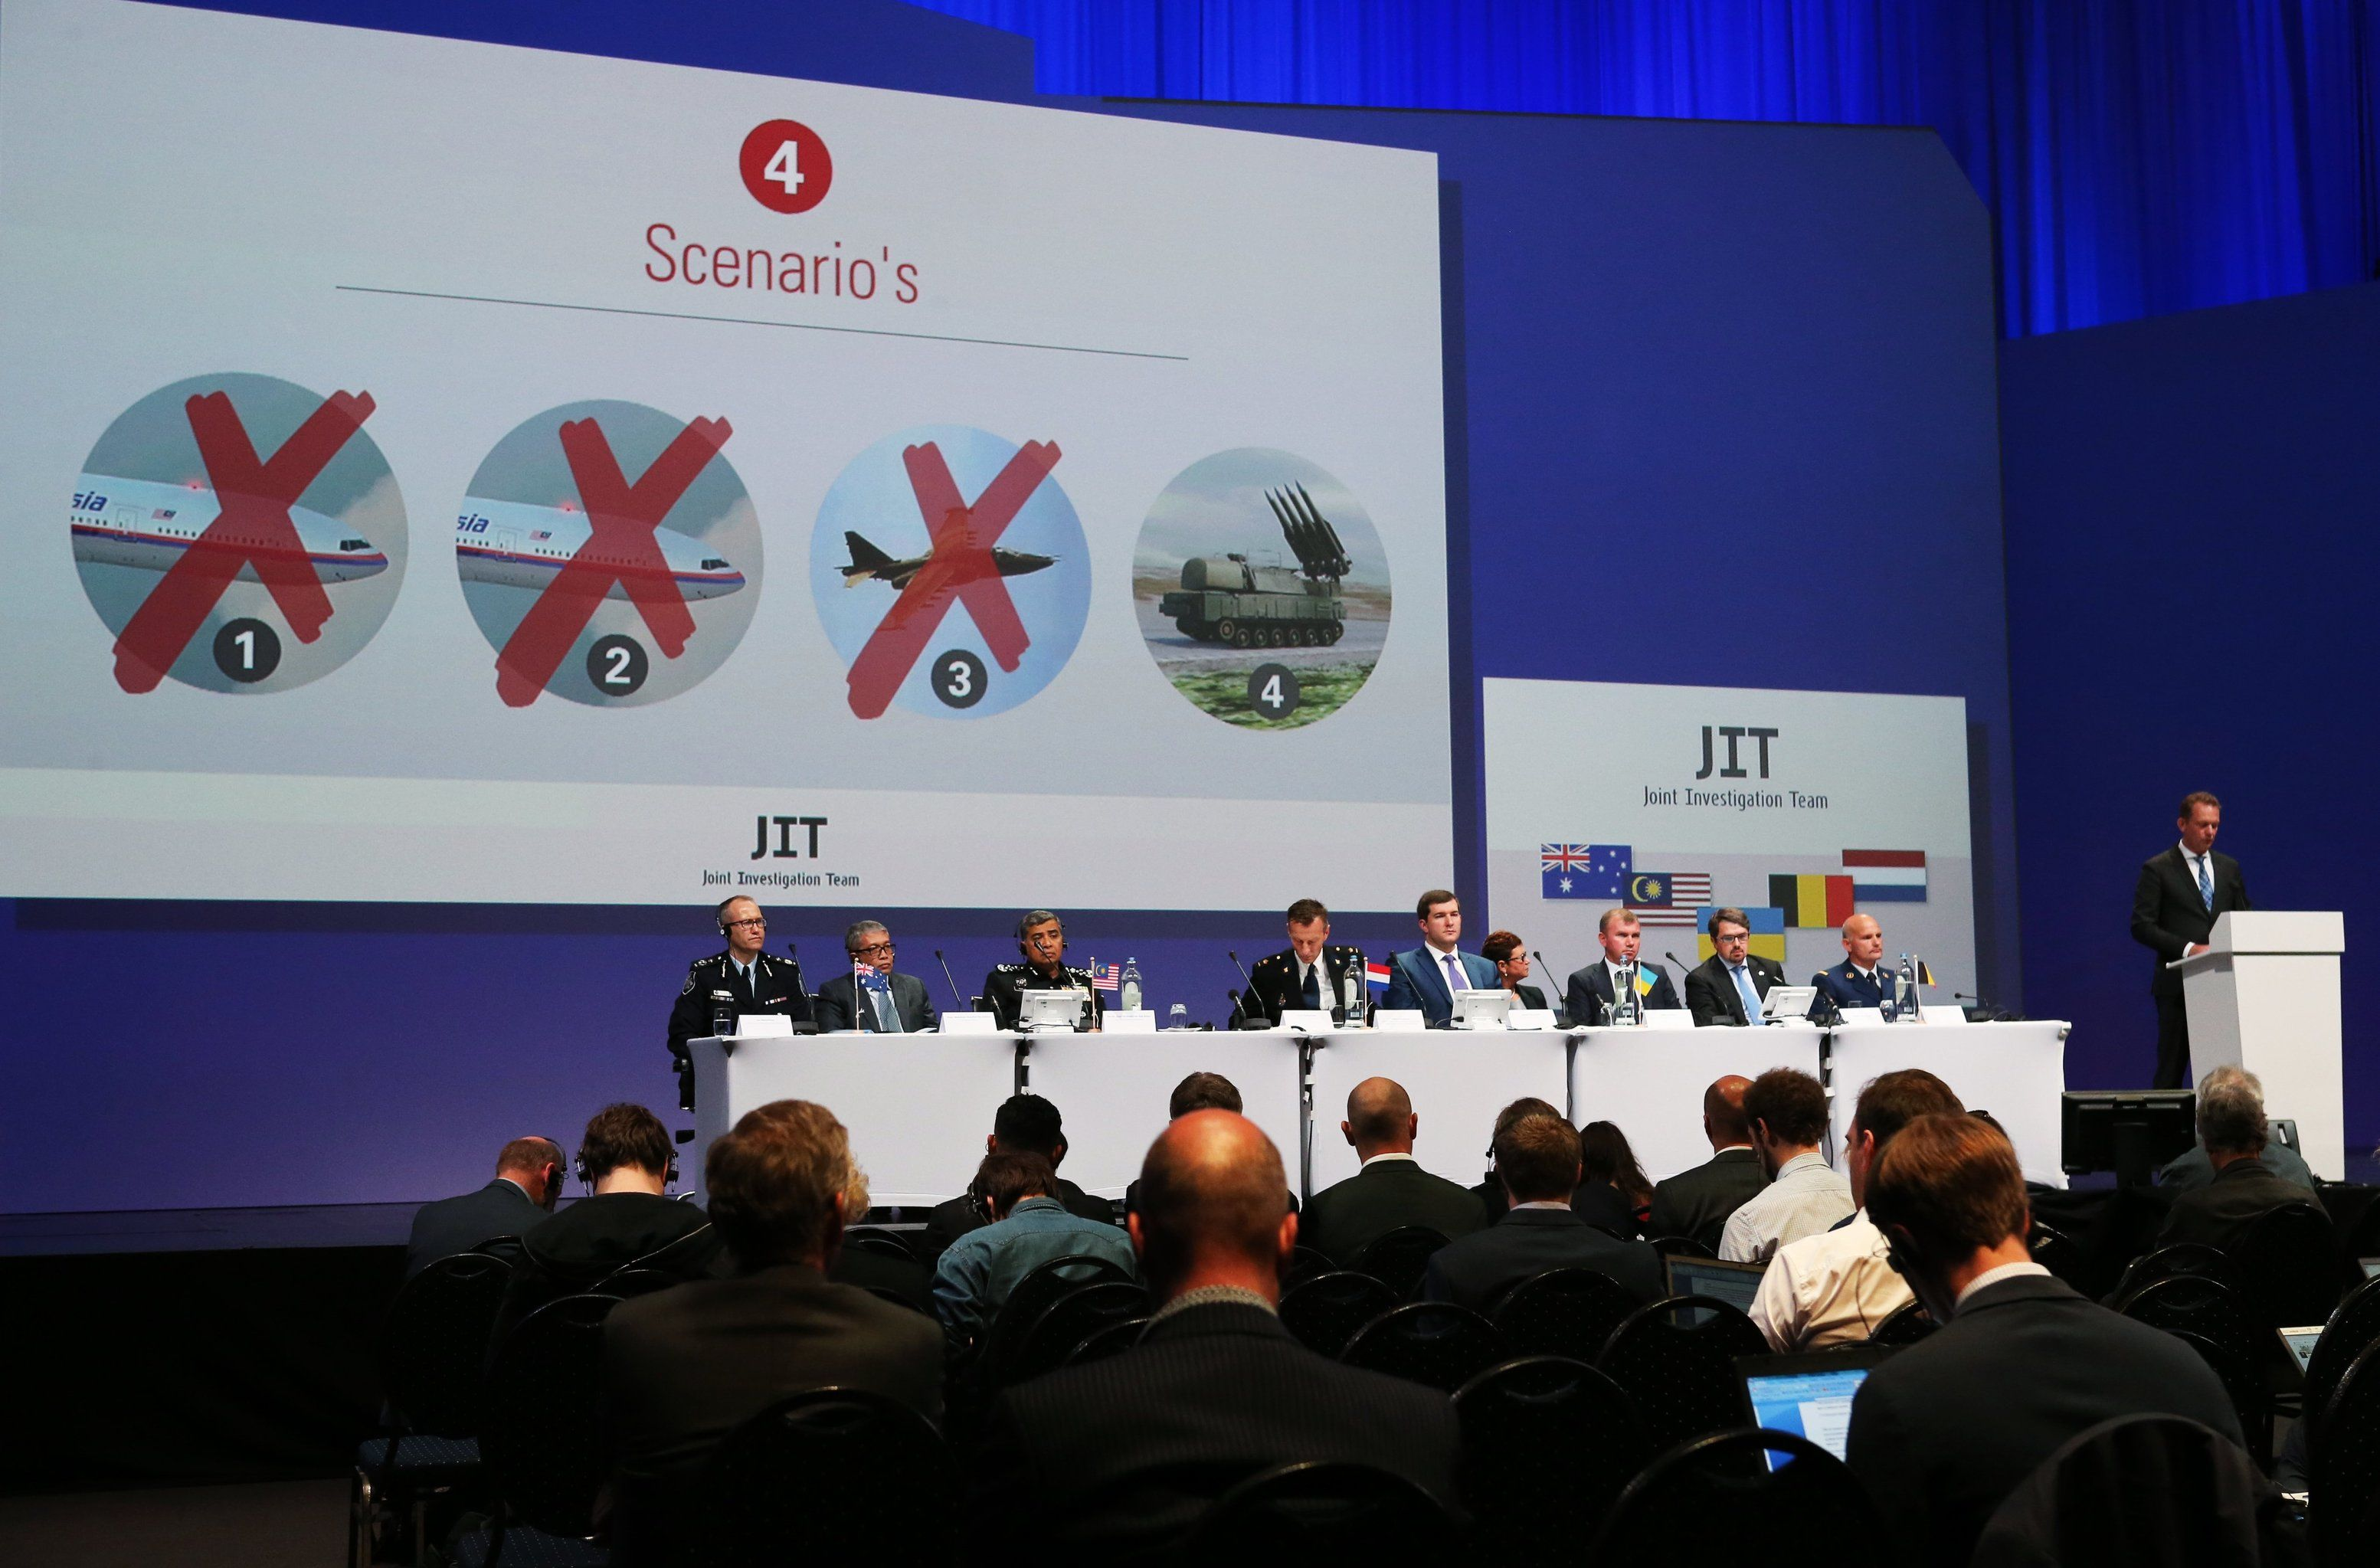 Netherlands announce preliminary investigation results of Malaysia Airlines Flight MH17 crash